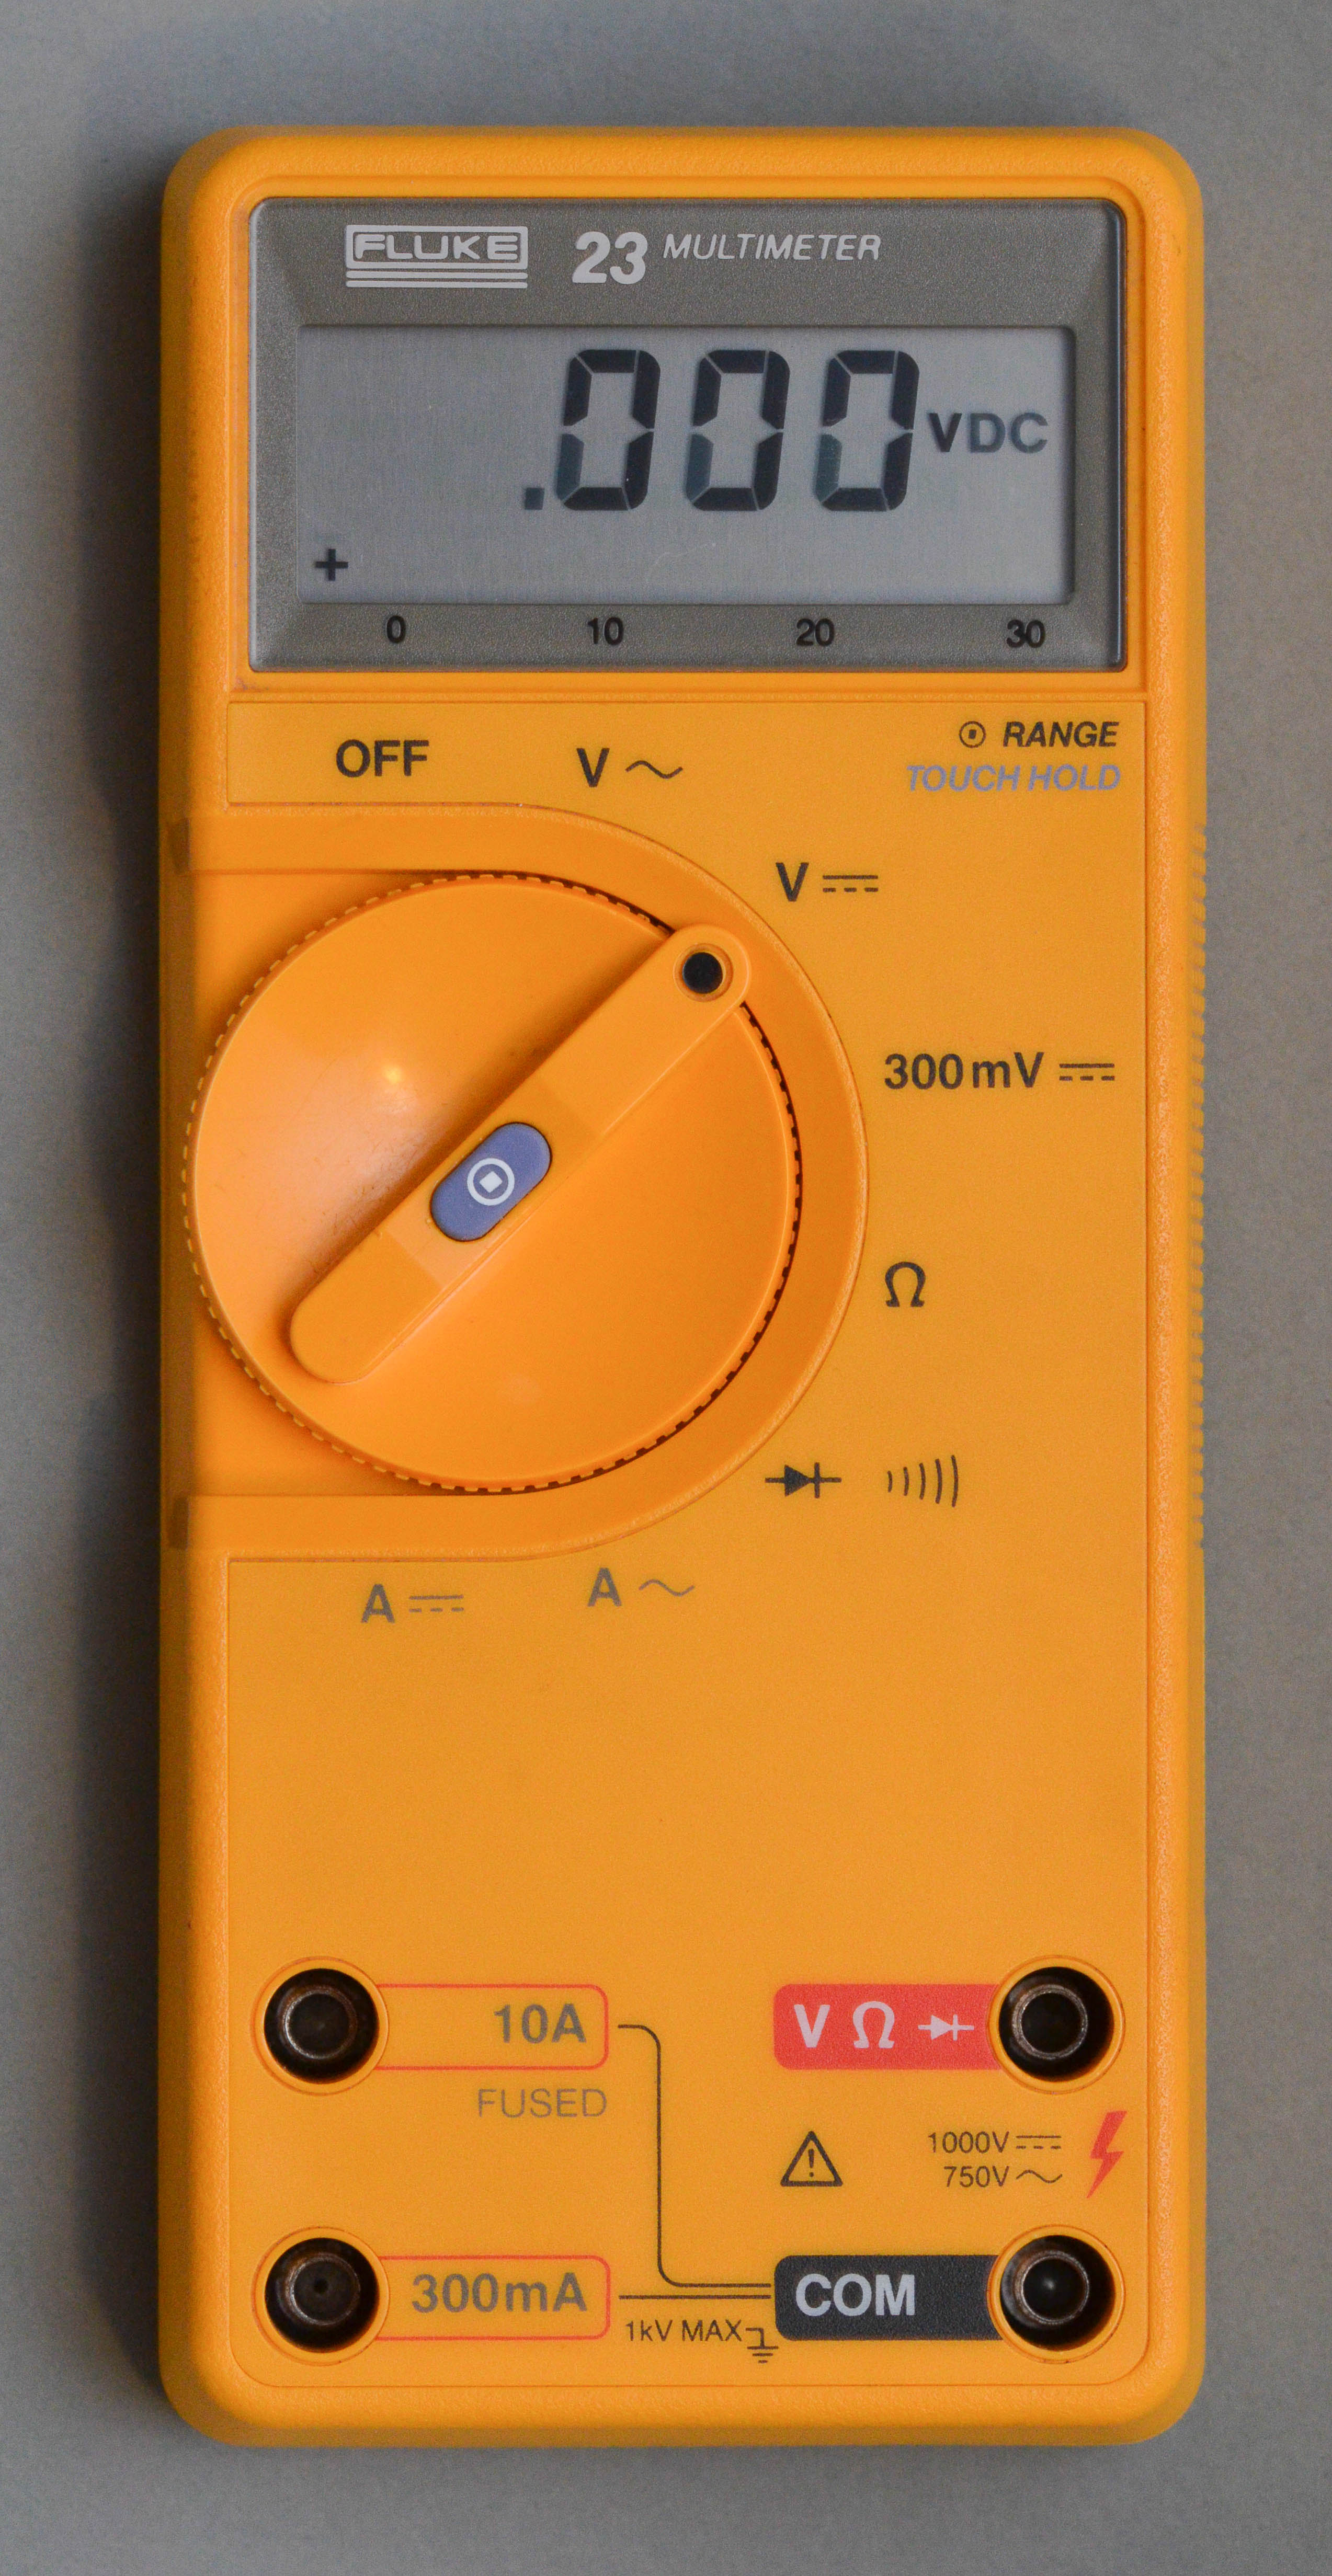 file fluke 23 multimeter front jpg wikimedia commons rh commons wikimedia  org fluke 23 series ii multimeter specifications Fluke 179 Multimeter Manual